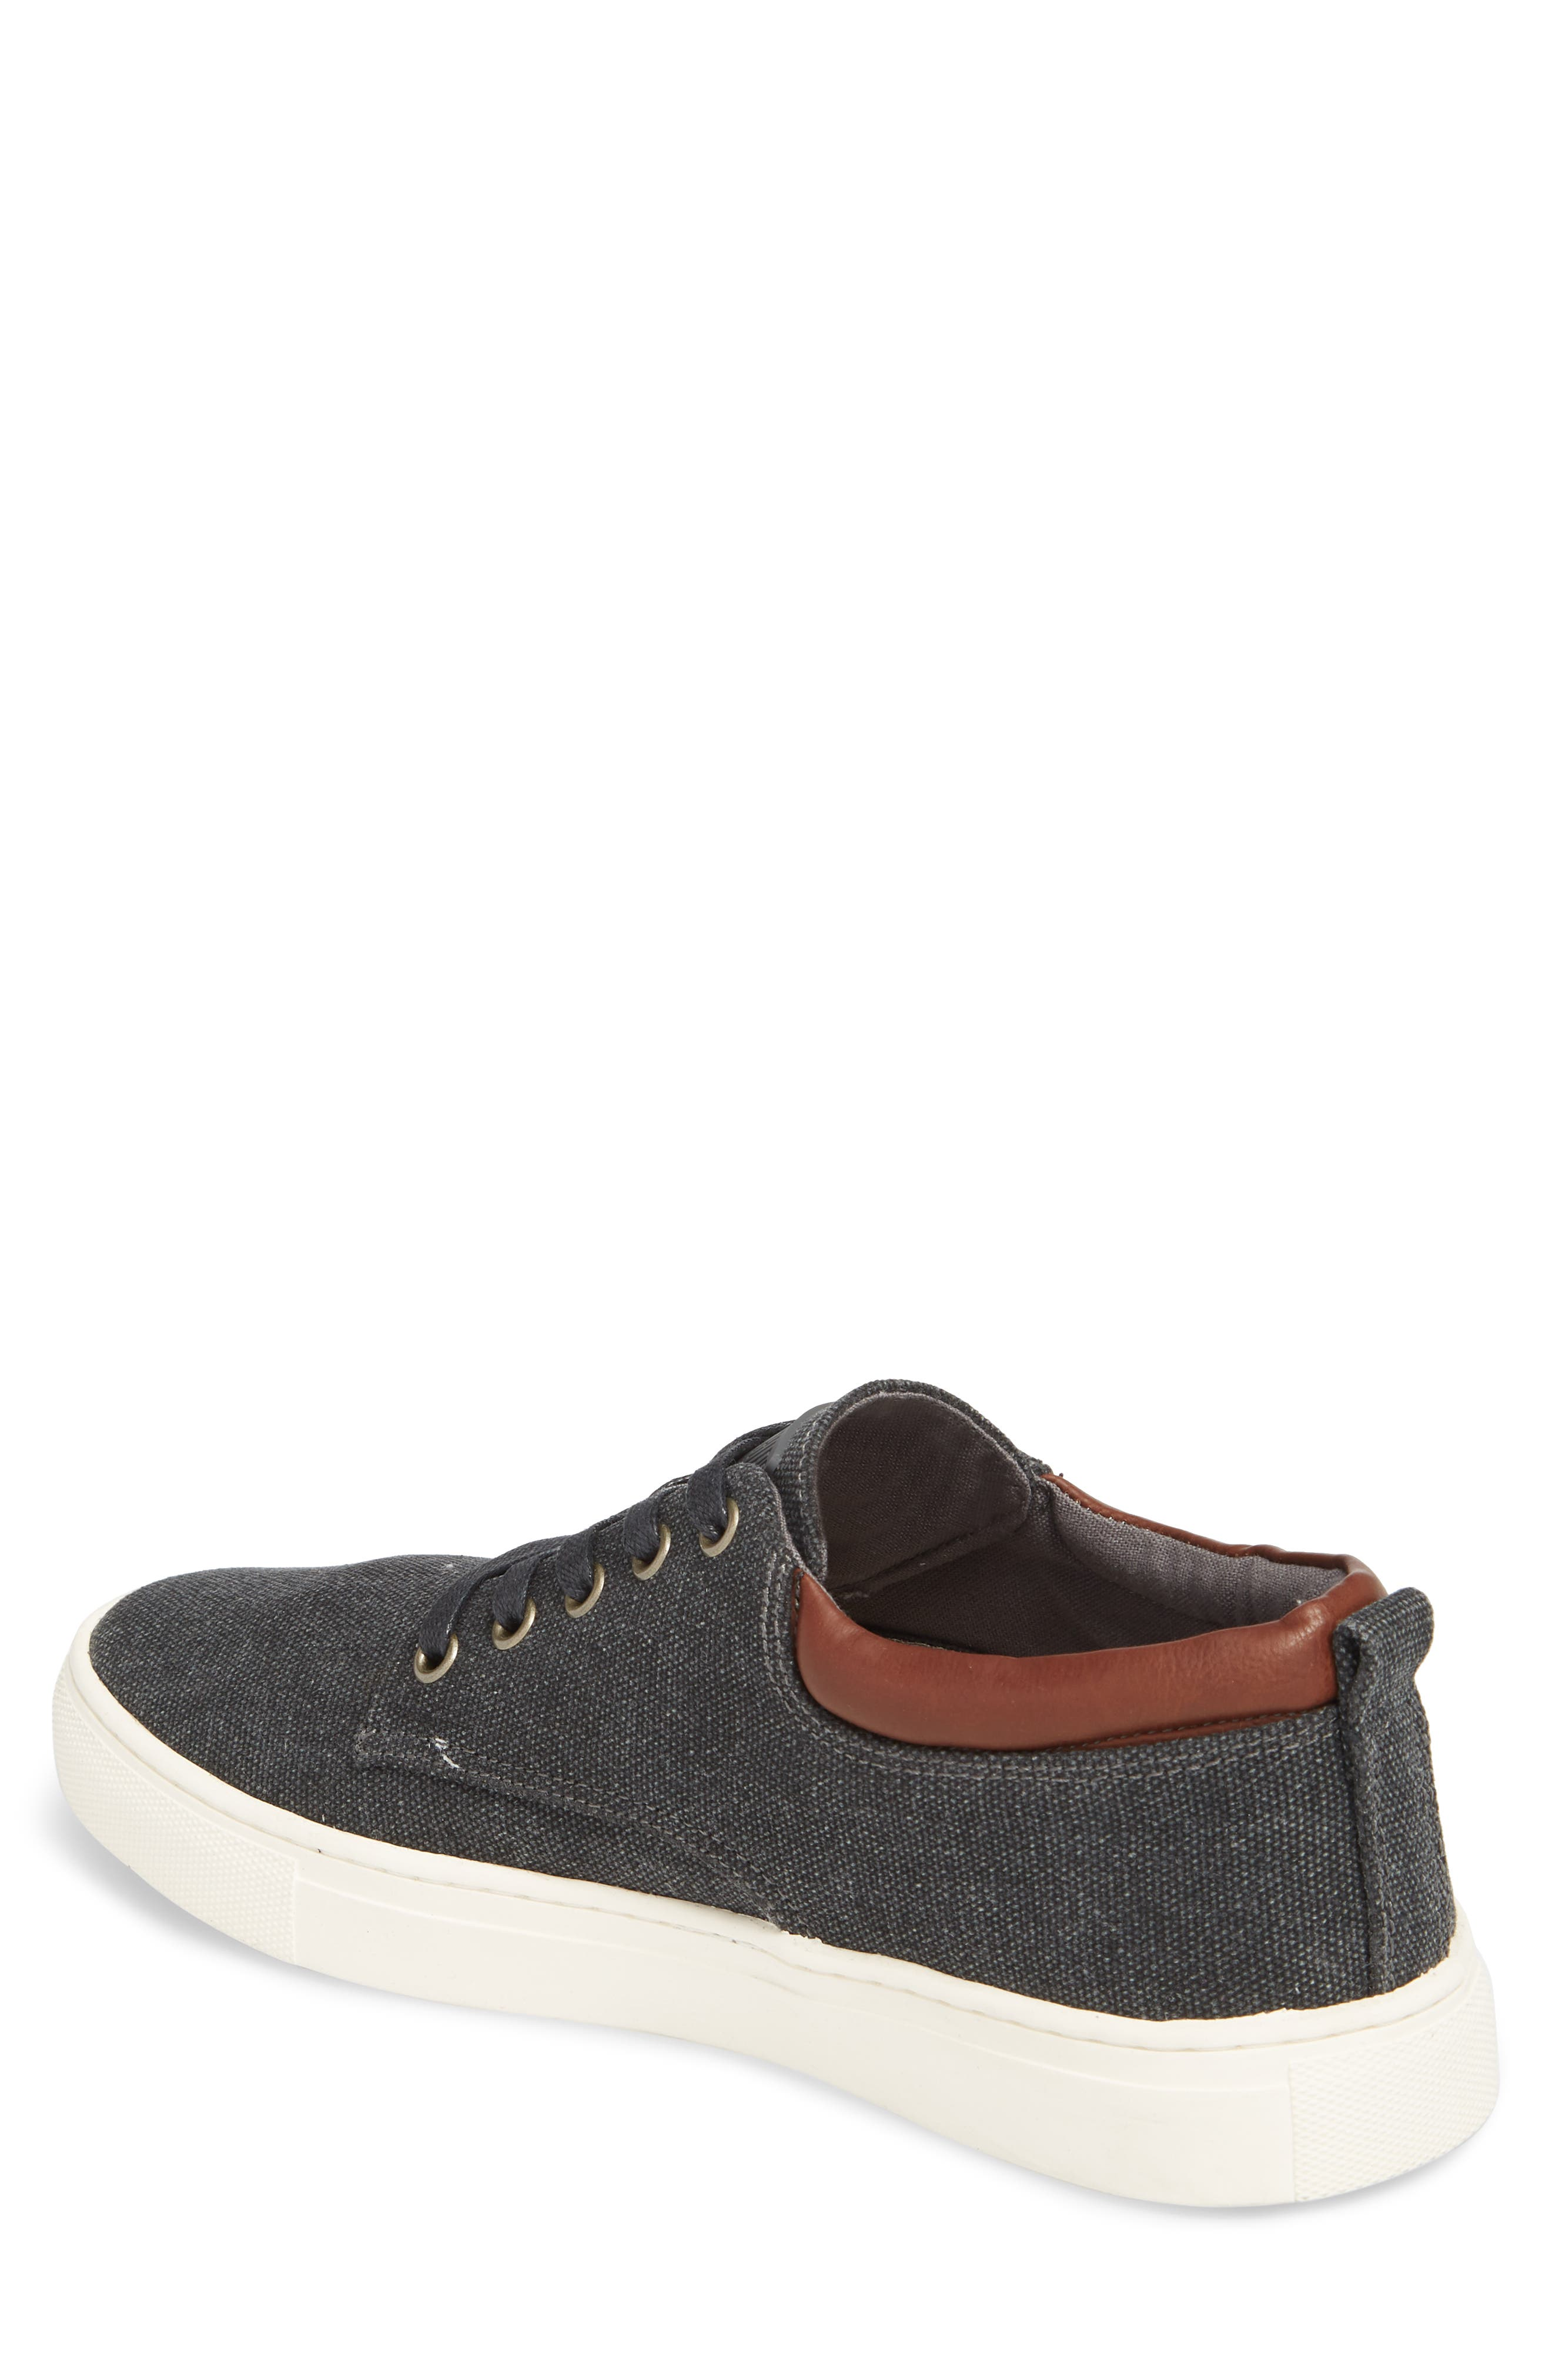 Fish 'N' Chips Hampton Low Top Sneaker,                             Alternate thumbnail 2, color,                             CHARCOAL FABRIC